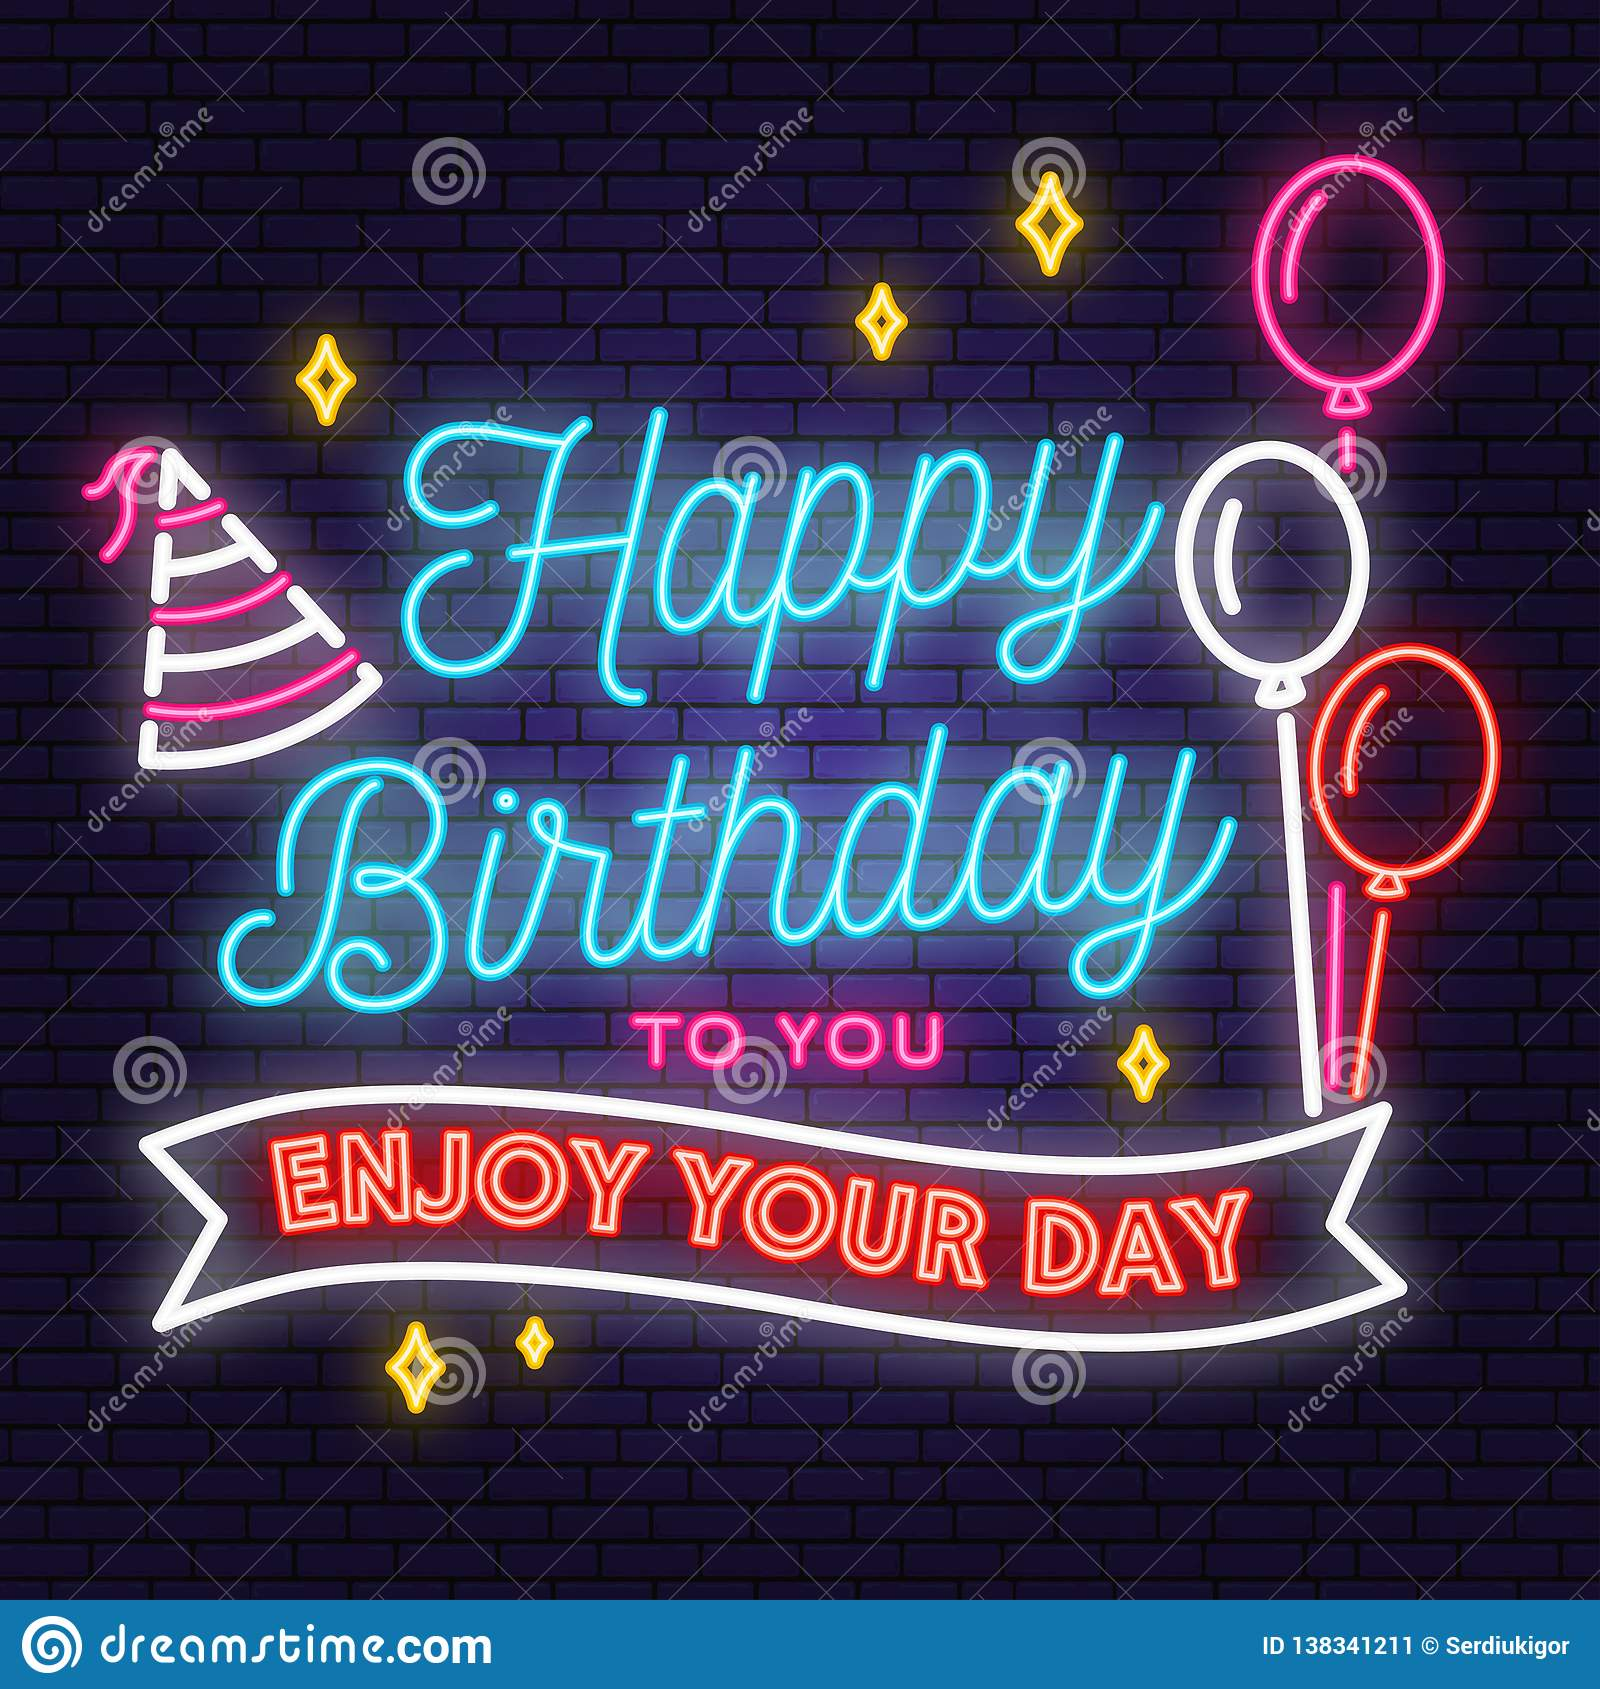 Happy Birthday To You Enjoy Your Day Neon Sign Stamp Badge Sticker Card With Bunch Of Balloons And Hat Vector Design For